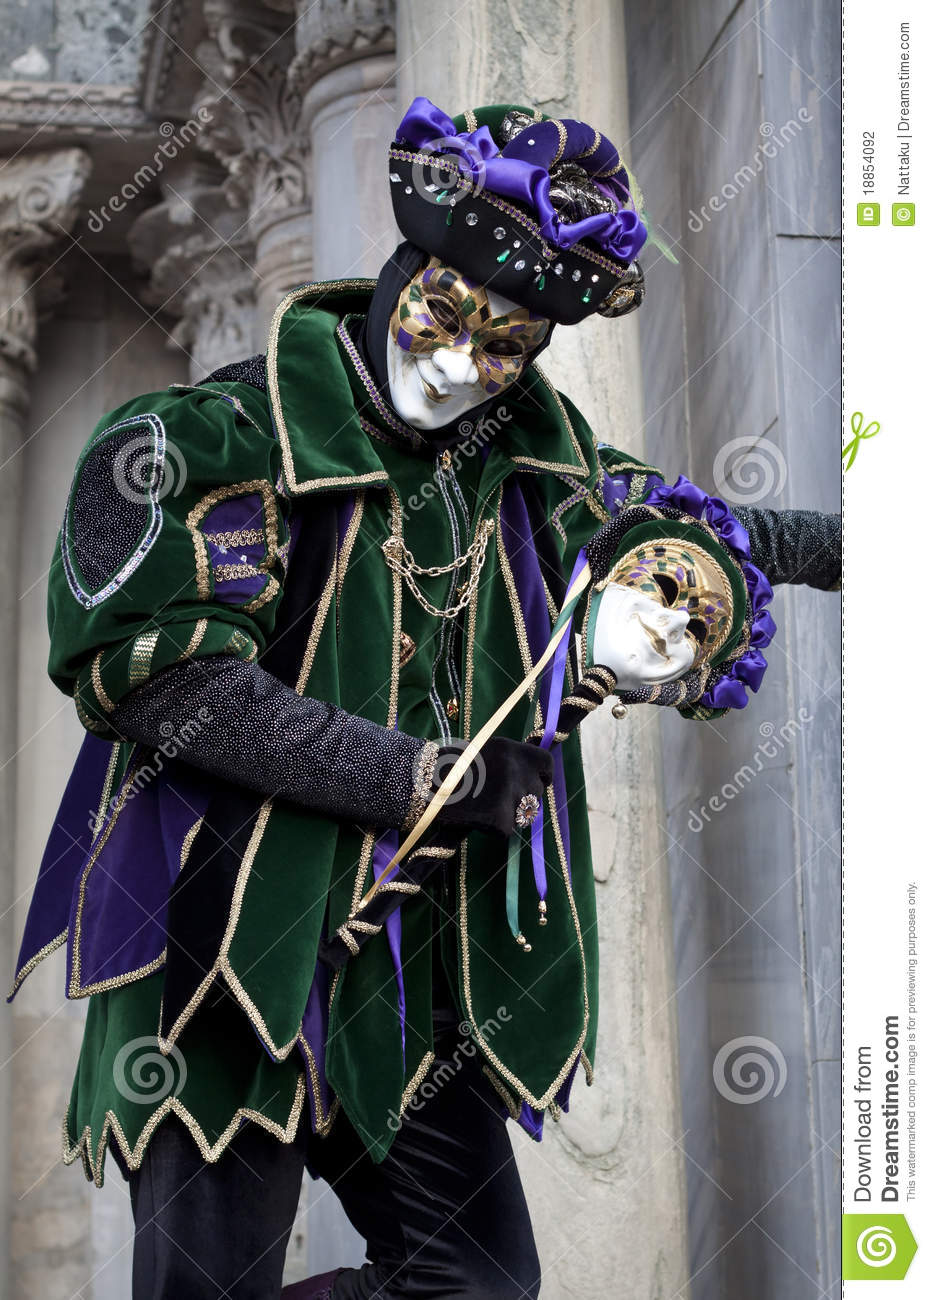 homme dans le costume de joker au carnaval 2011 de venise photographie ditorial image du. Black Bedroom Furniture Sets. Home Design Ideas